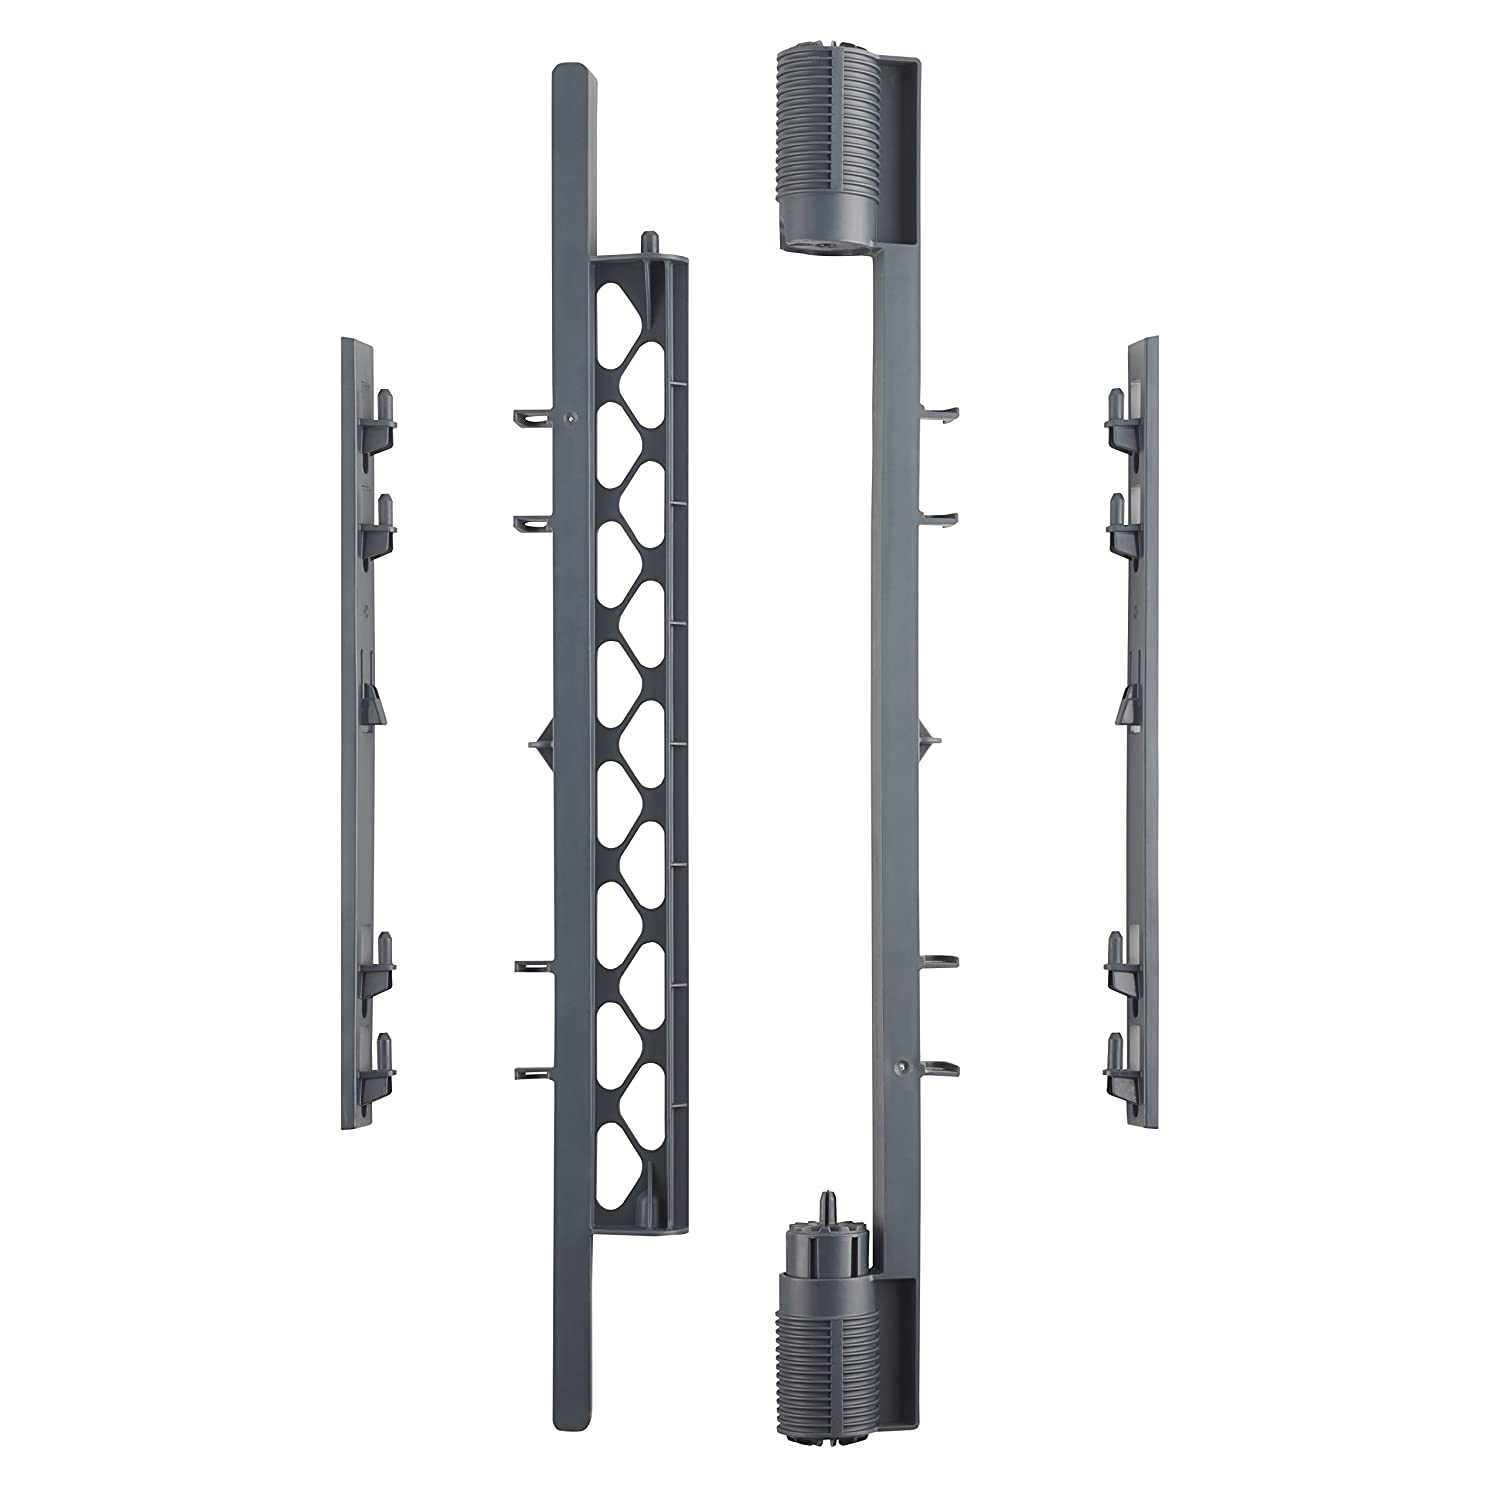 Superyard Wall Mount Kit' by North States: Hardware to make any Superyard Classic, Colorplay or Indoor-Outdoor 6-panel play yard or 2-panel play yard extension into an extra-wide barrier (Gray)